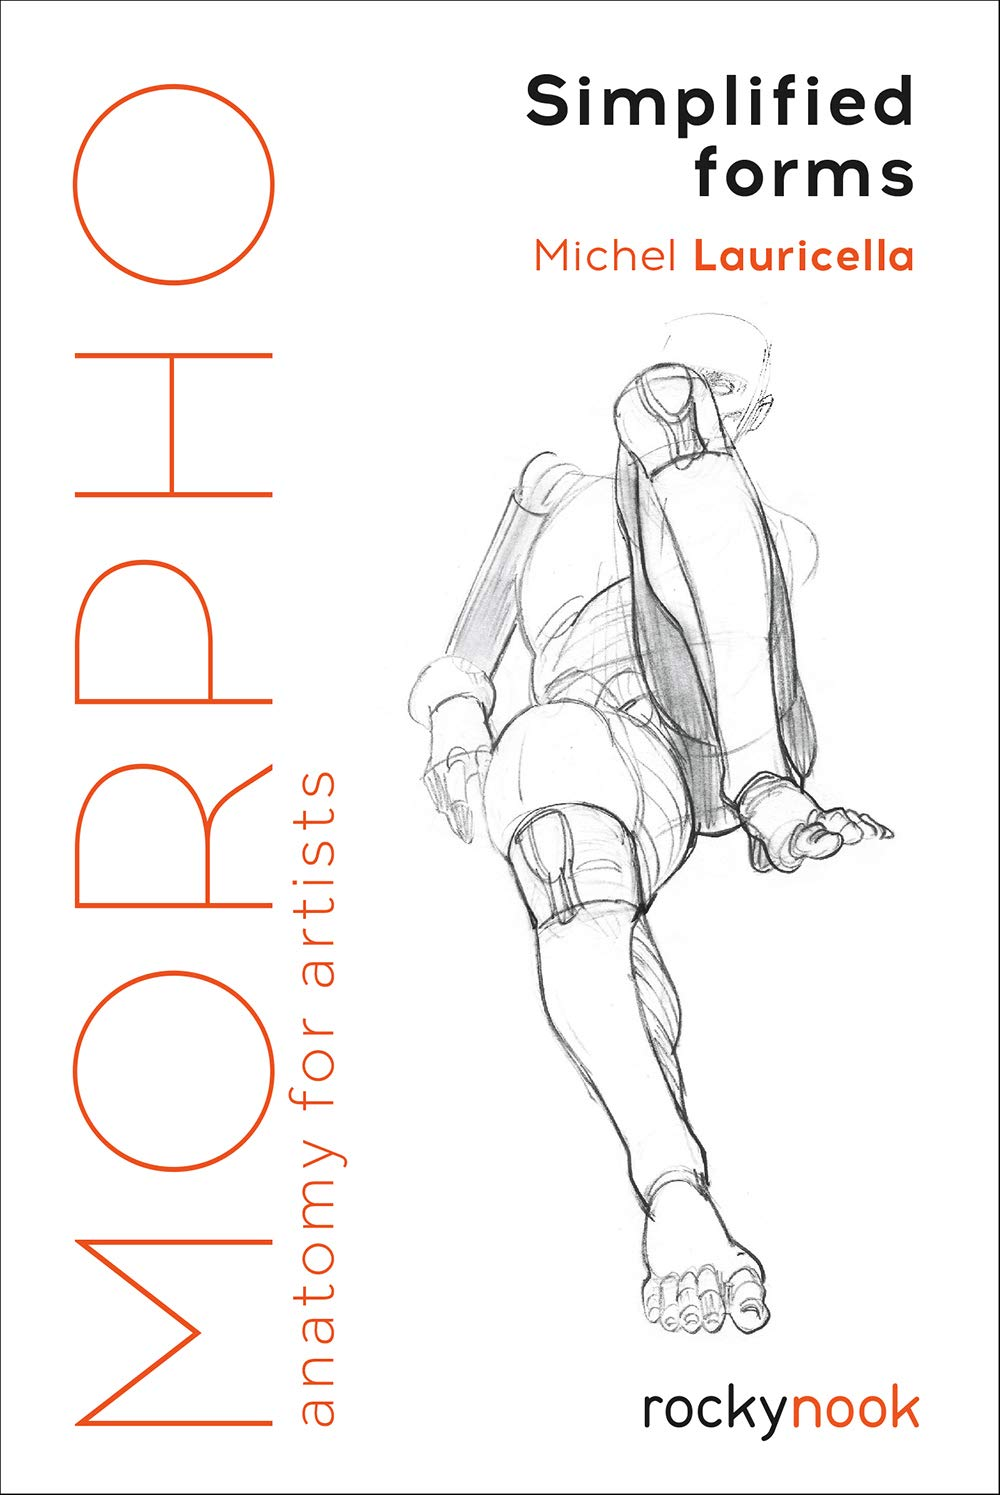 Morpho Simplified Forms Anatomy For Artists Michel Lauricella